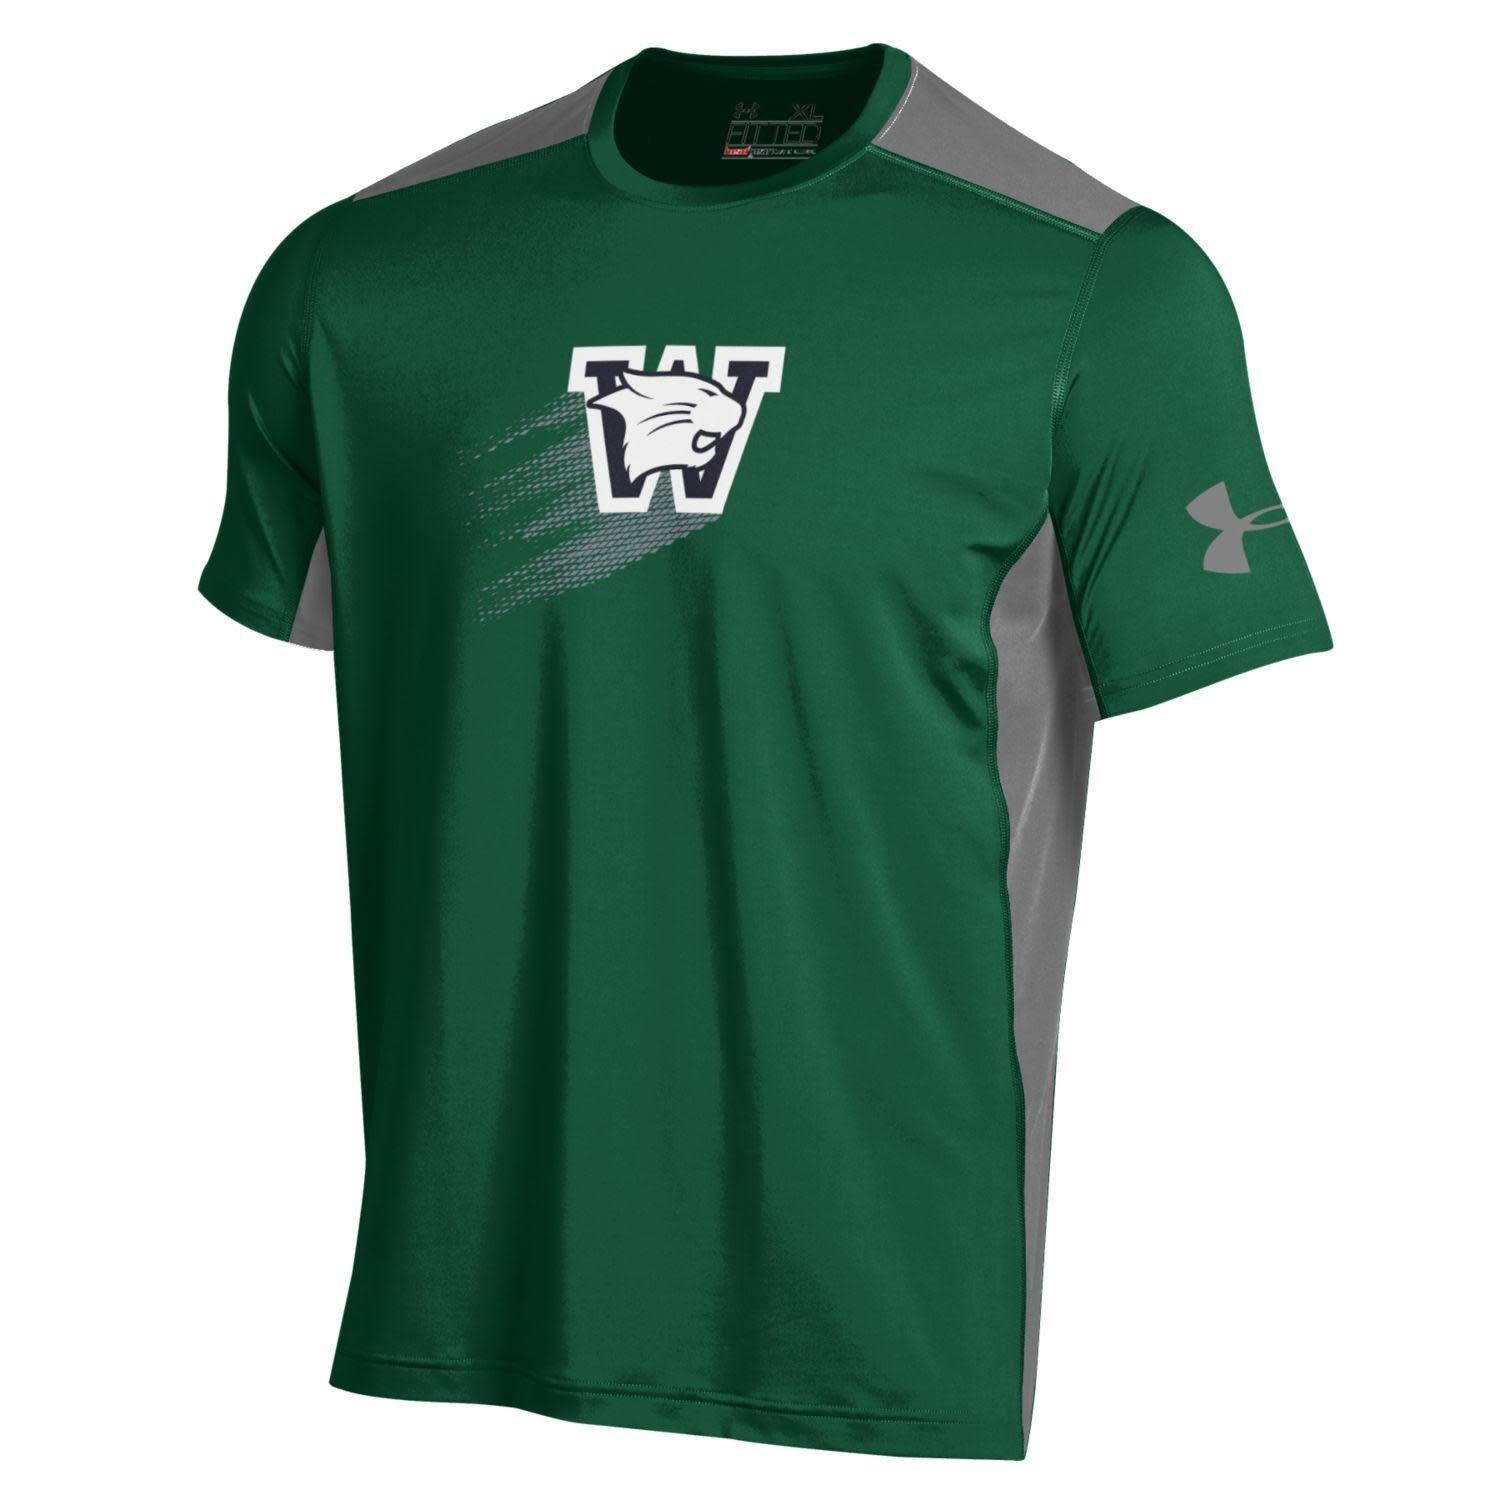 Under Armour T: UA Raid SS Forest - Logo with Gray Diamond Flair/Gray Mesh Sides